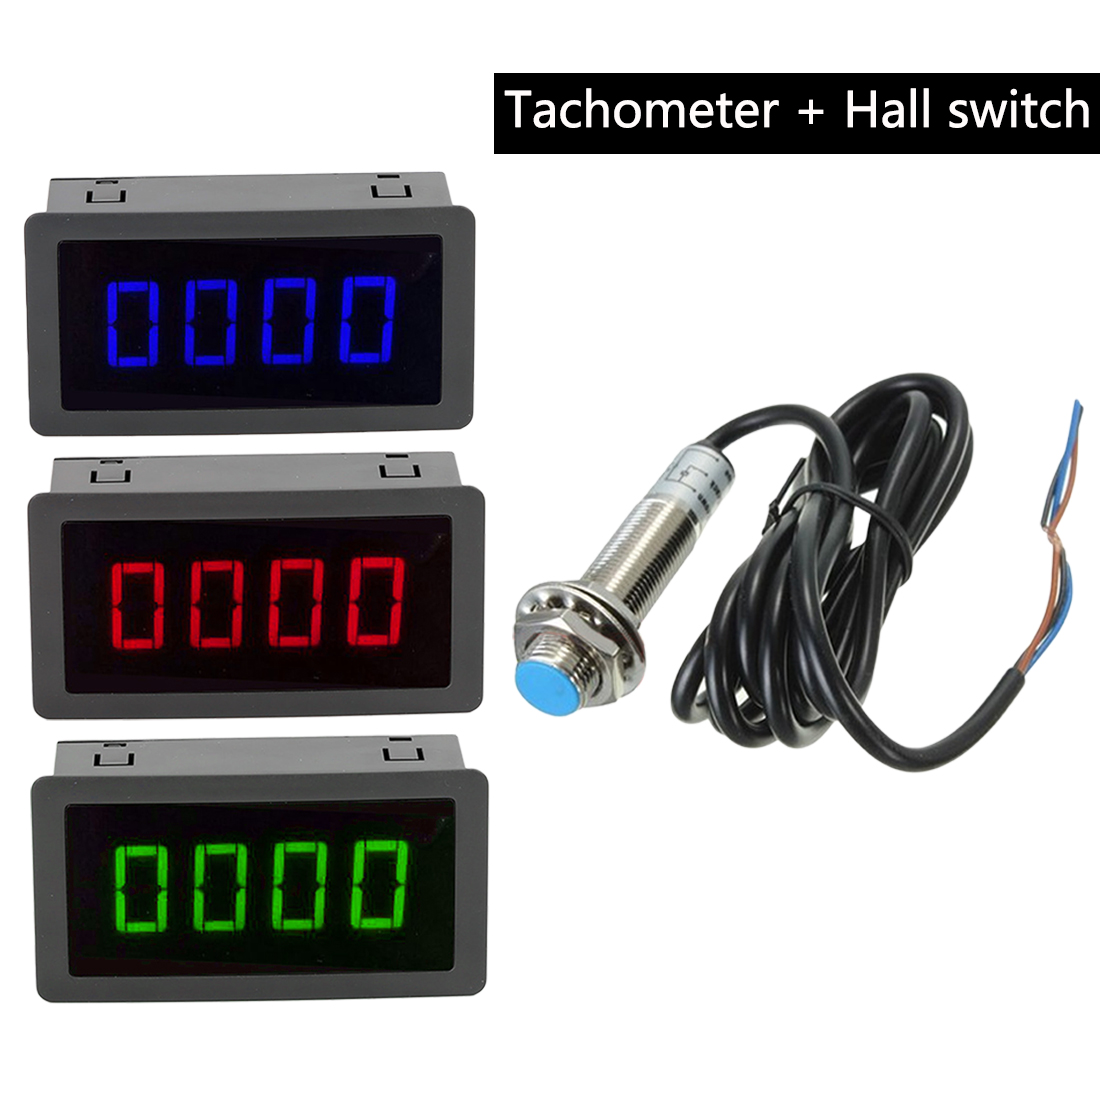 1Pc Measuring Gauges 4 Digital Blue/Green/Red LED Tachometer RPM Speed Meter 10-9999RPM Hall Proximity Switch Sensor NPN